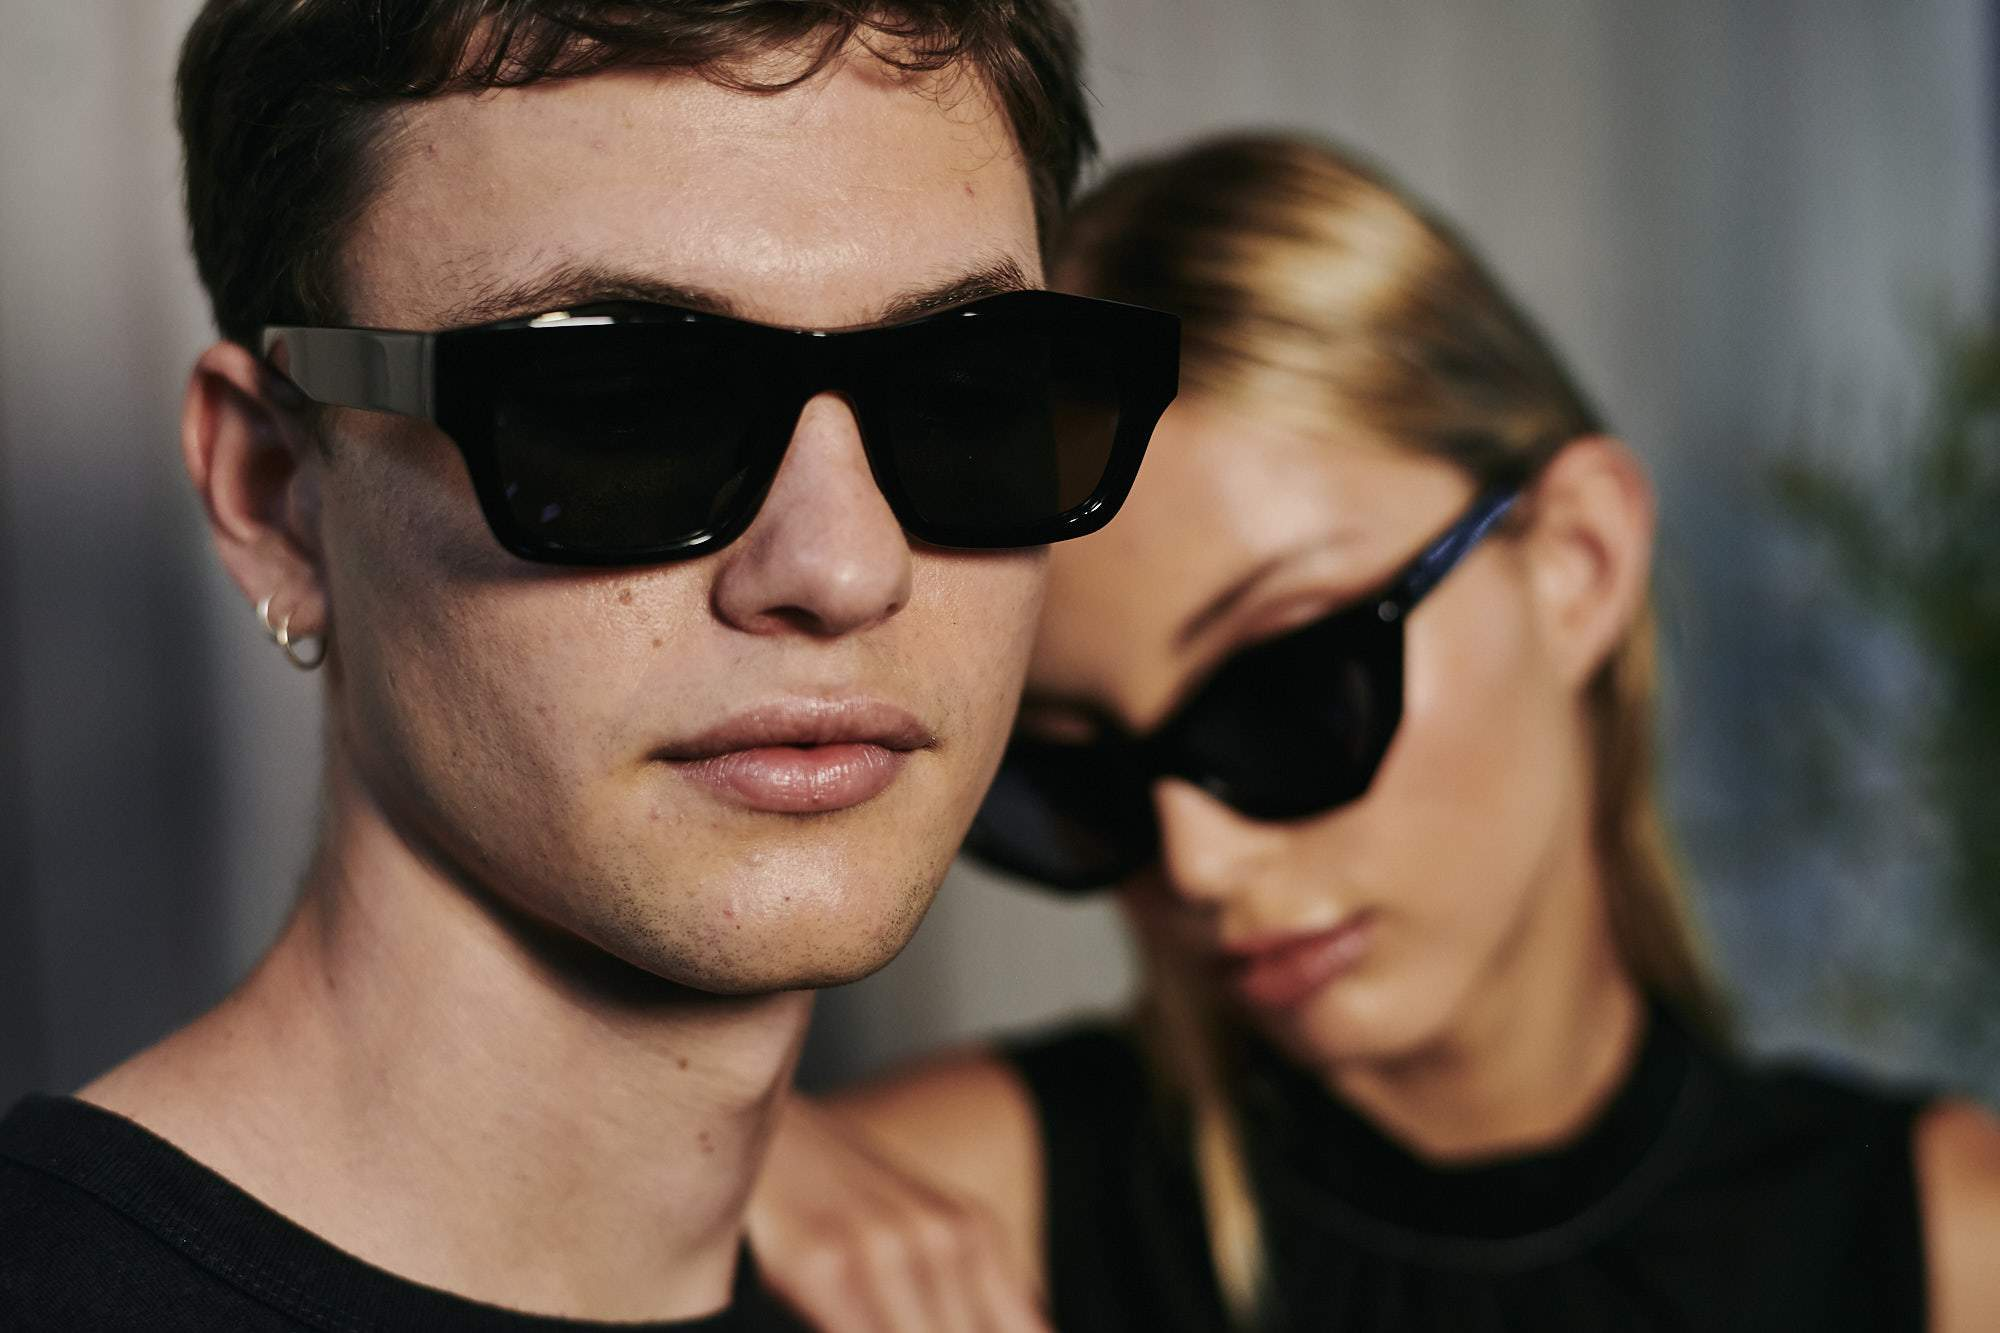 Childe for Life x Sunglass Fix sustainable eyewear future